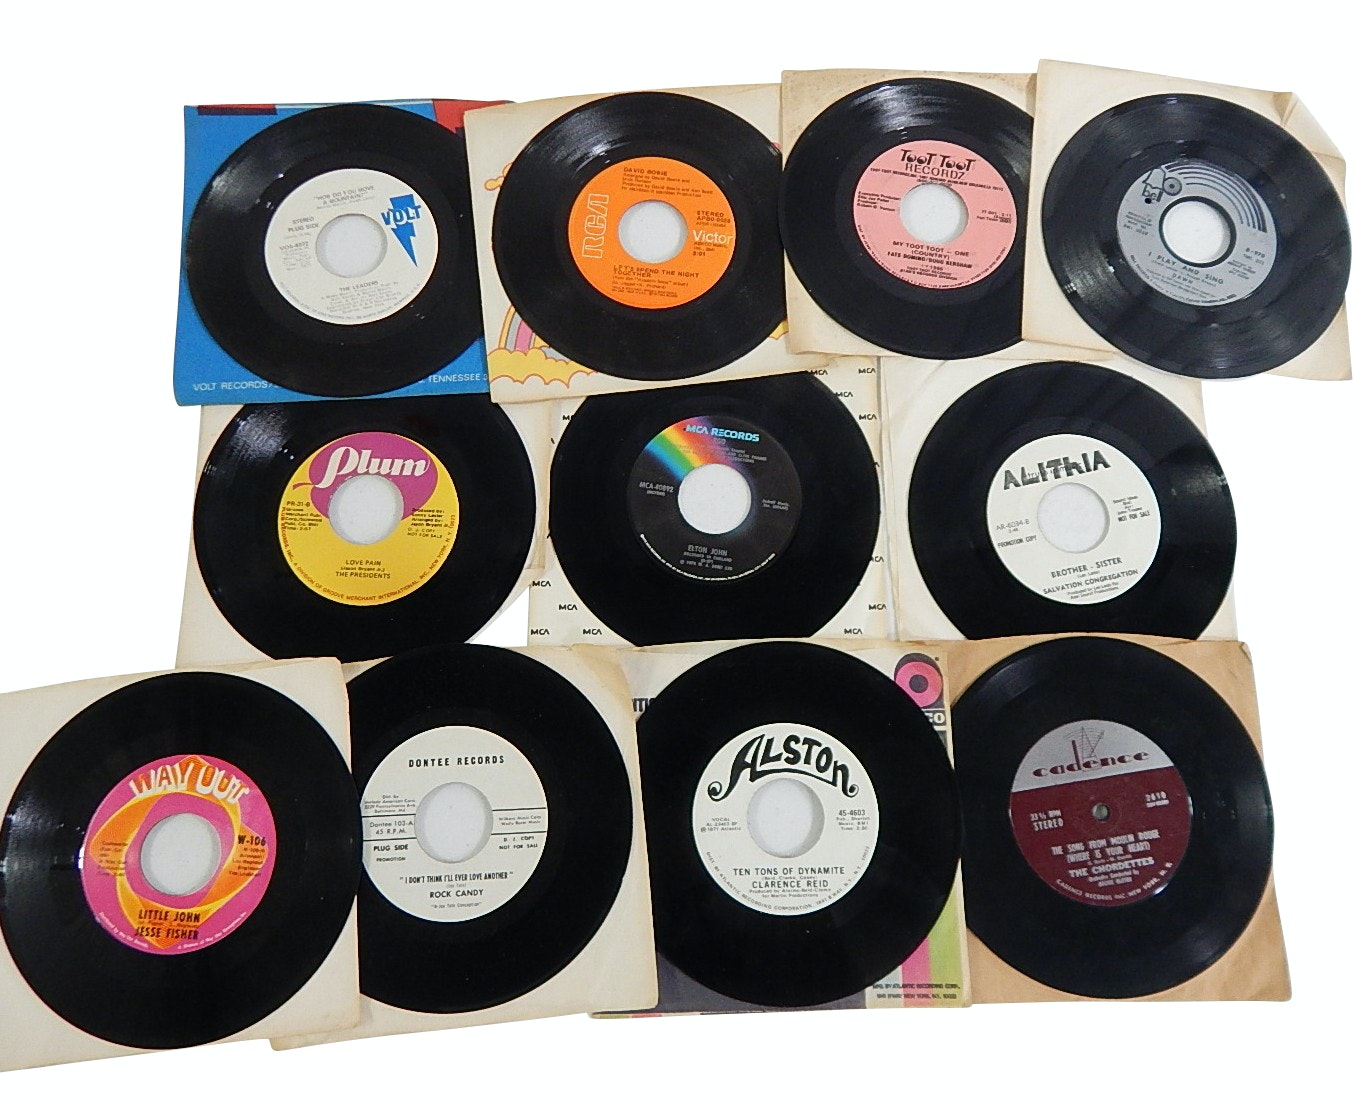 1960s/70s Rock, Pop, Jazz 45 RPM Records with Elton John, David Bowie, More